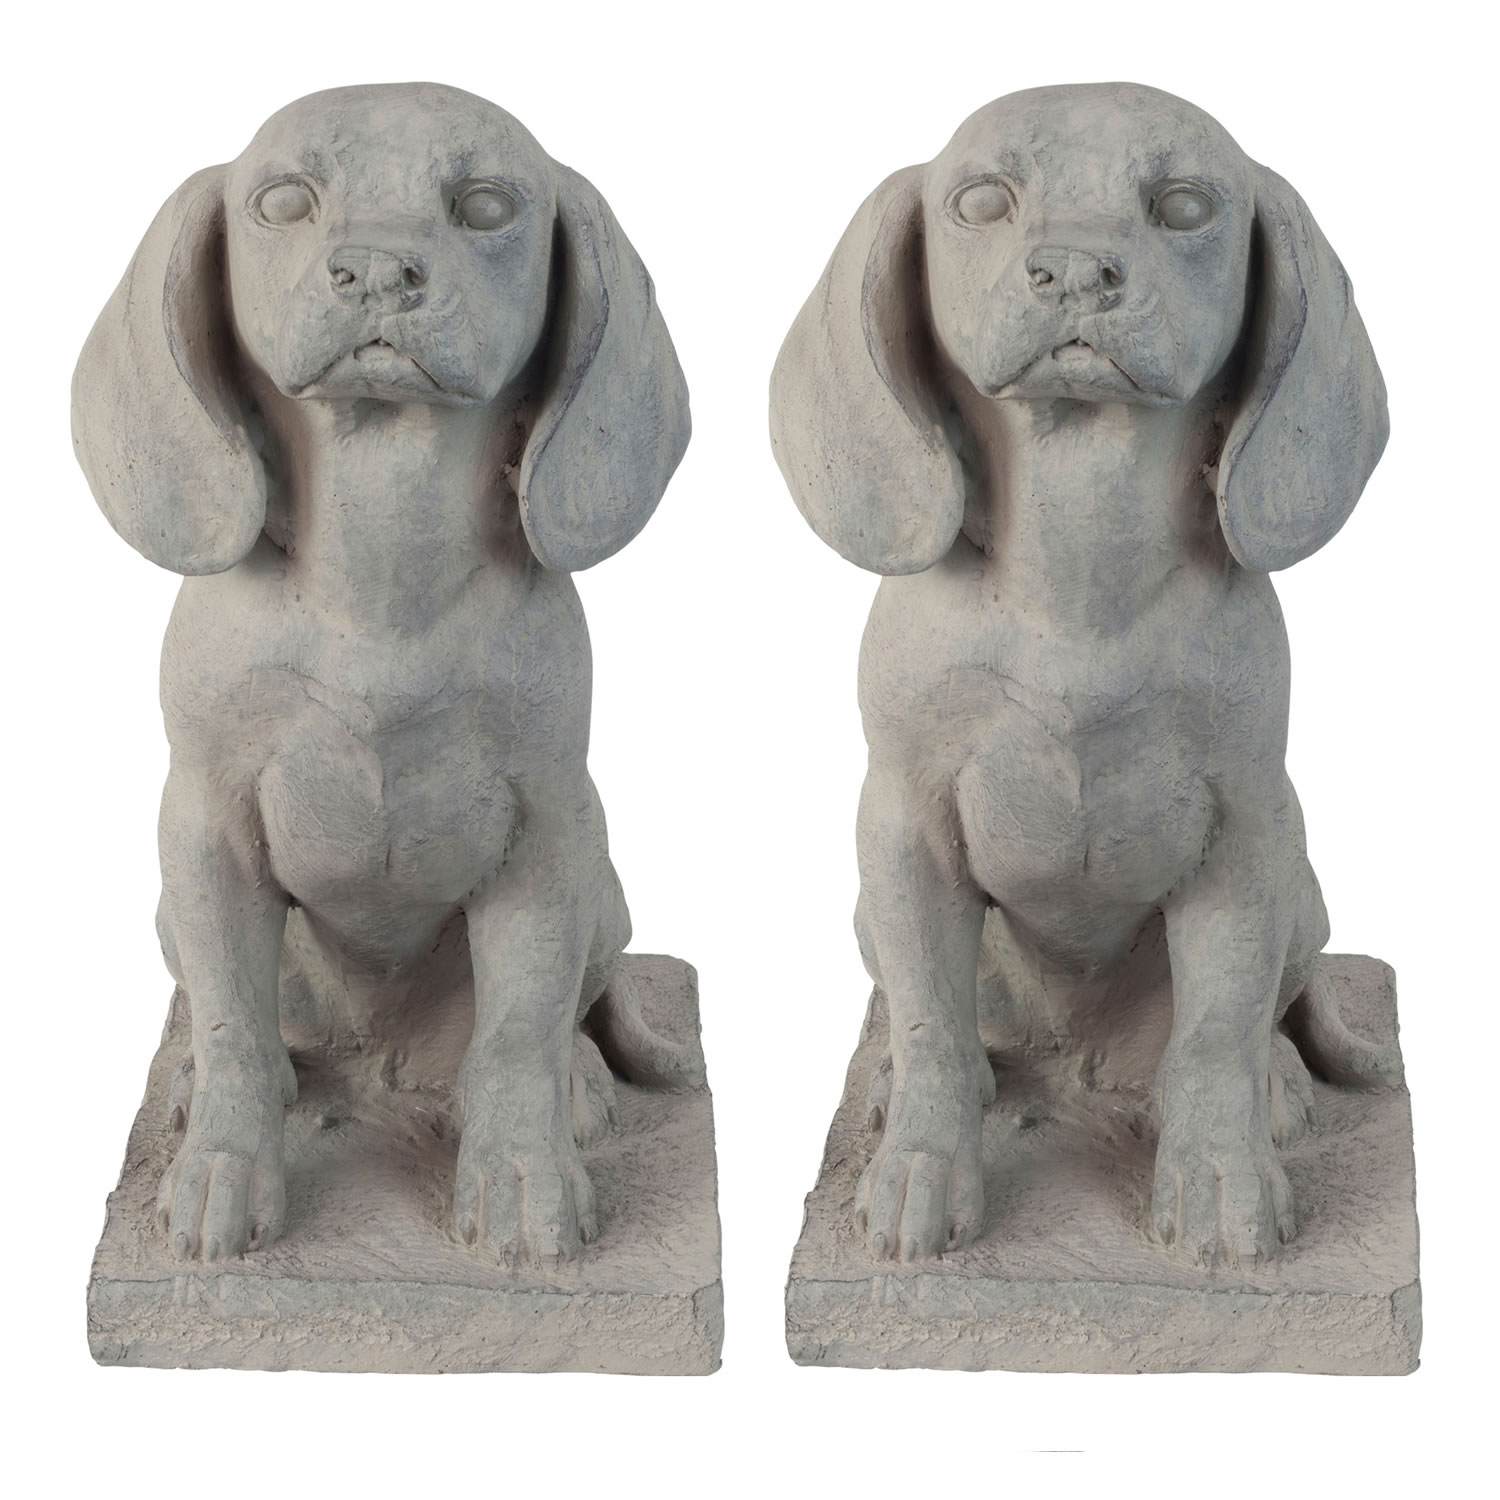 Buy Dog Garden Ornaments from Garden4Less